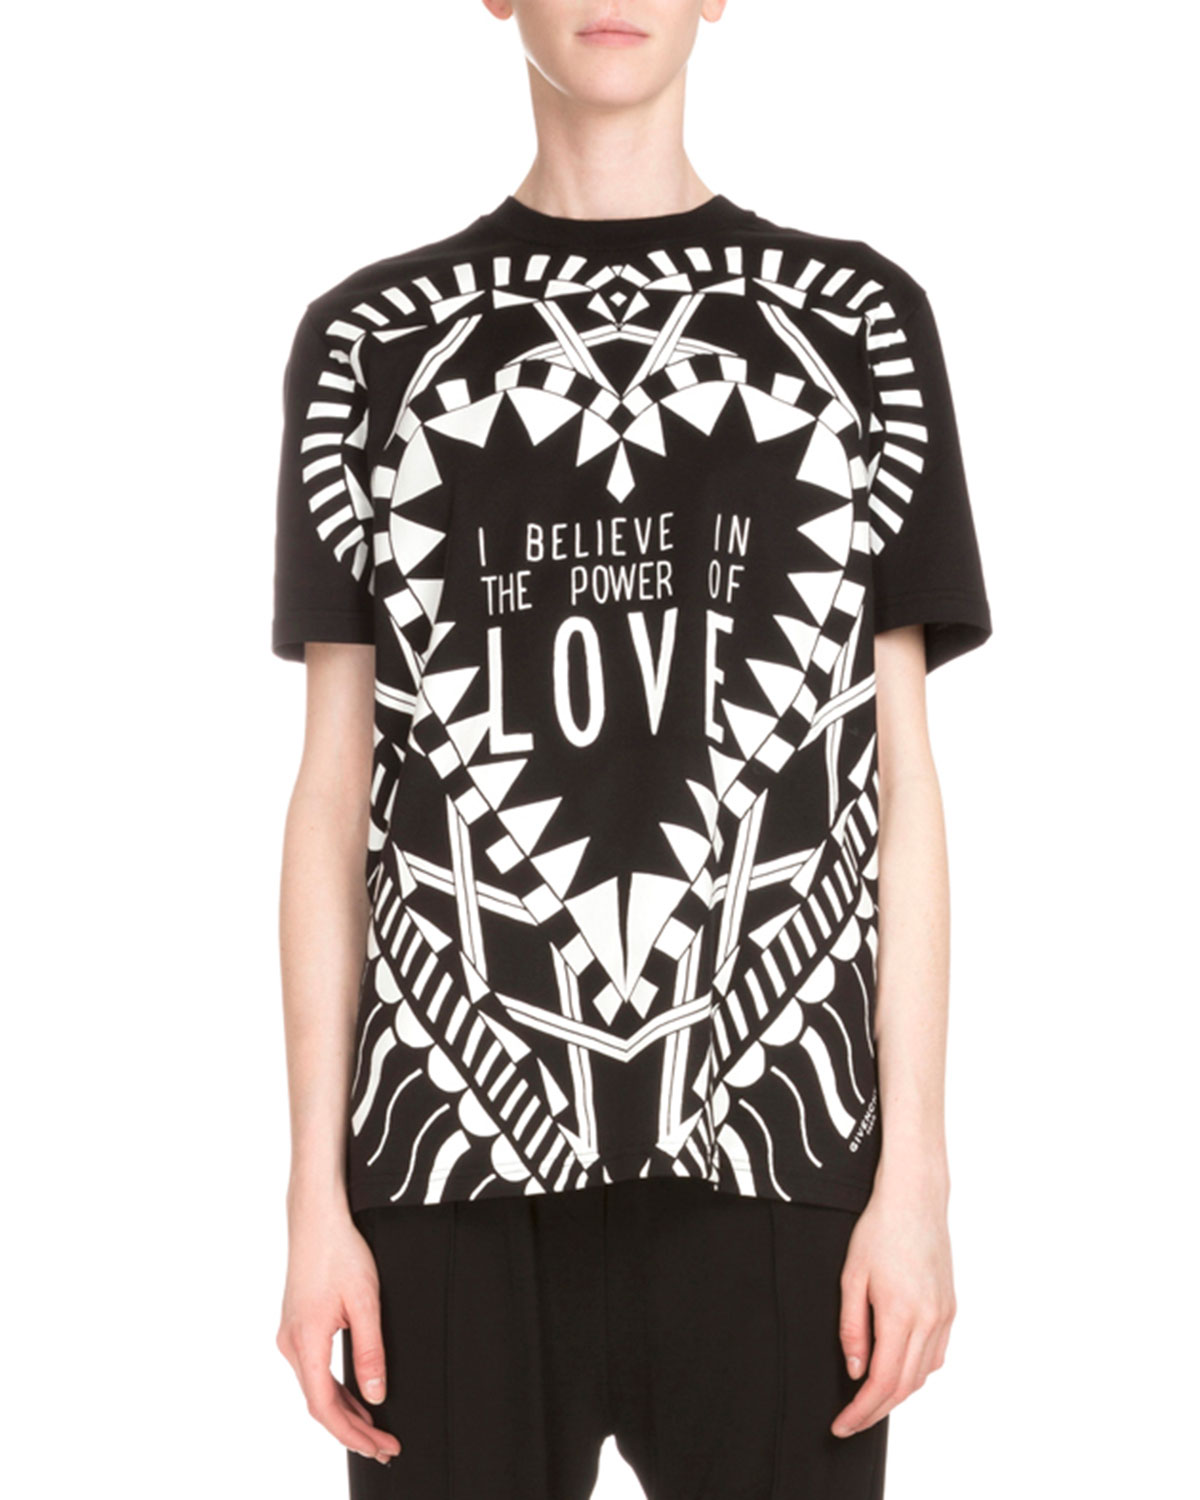 Short-Sleeve Love Graphic Tee, Black